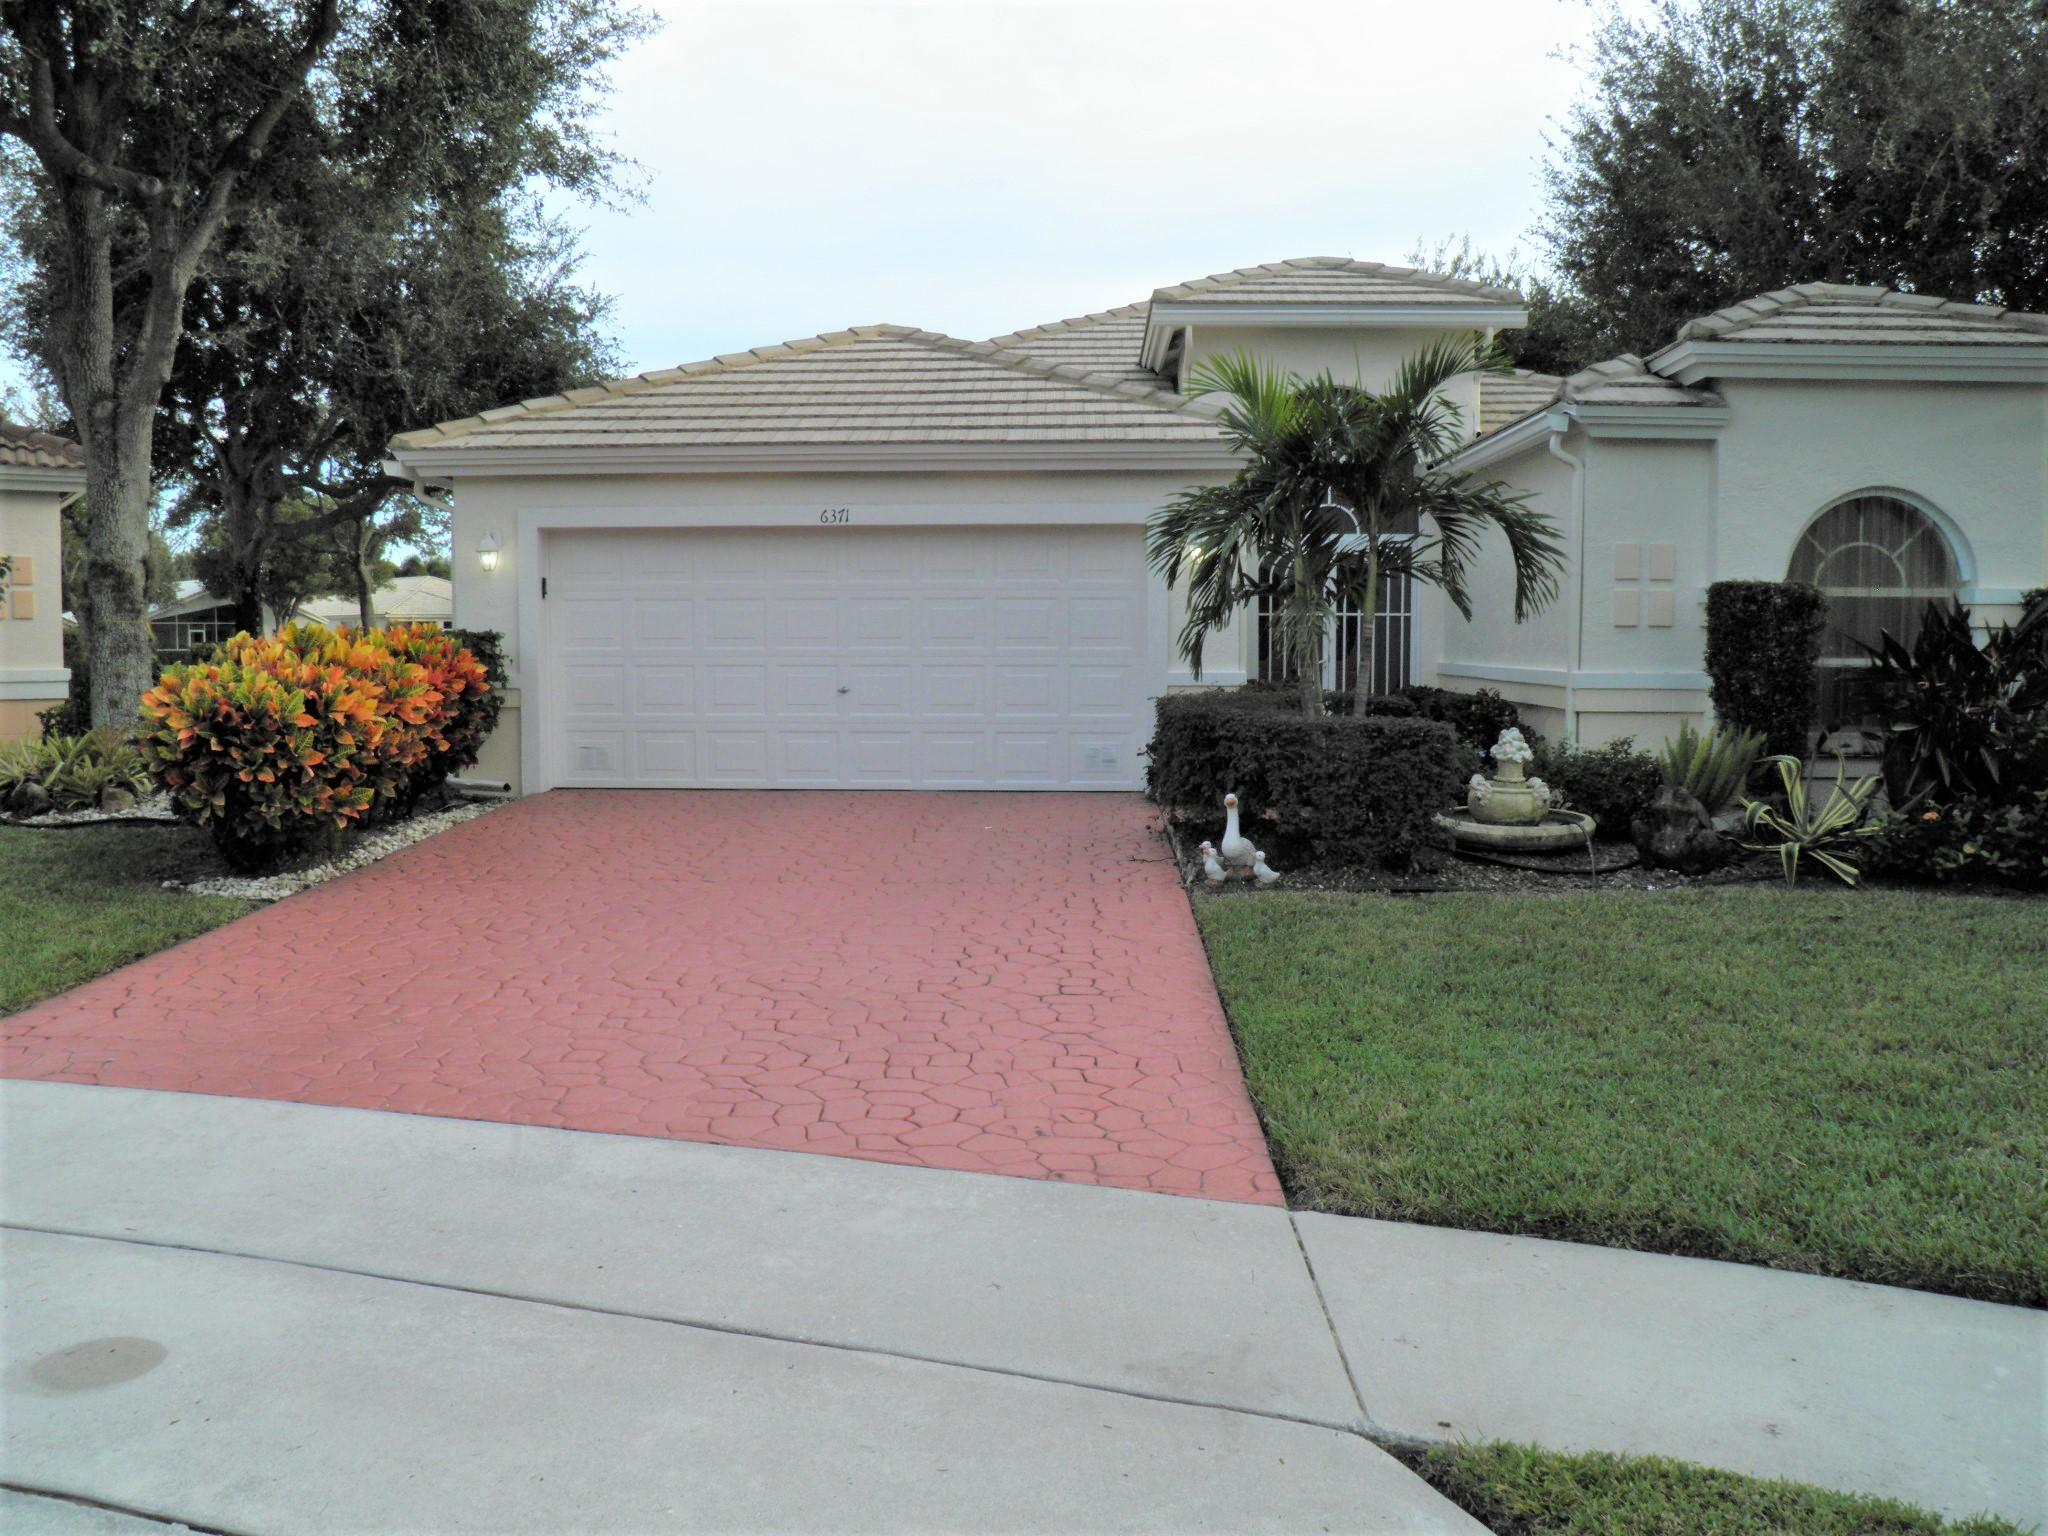 CORAL LAKES III/REGENCY COVE NORTH home 6371 Reflection Point Circle Boynton Beach FL 33437